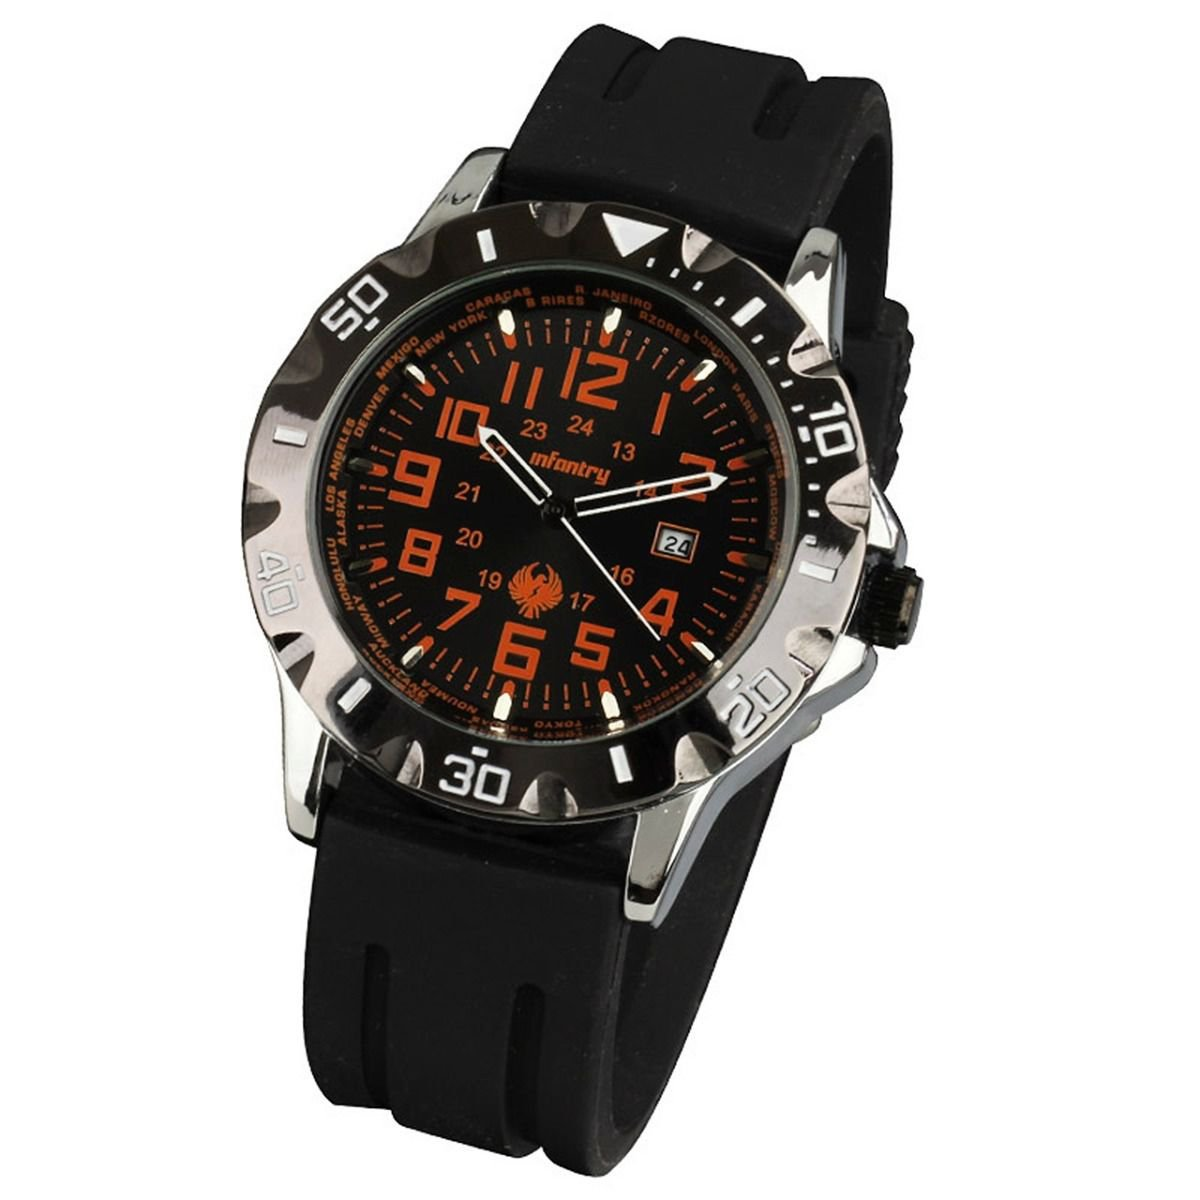 New Infantry Mens Quartz 24h Dial Sport Wrist Watch Black Rubber Band Waterproof